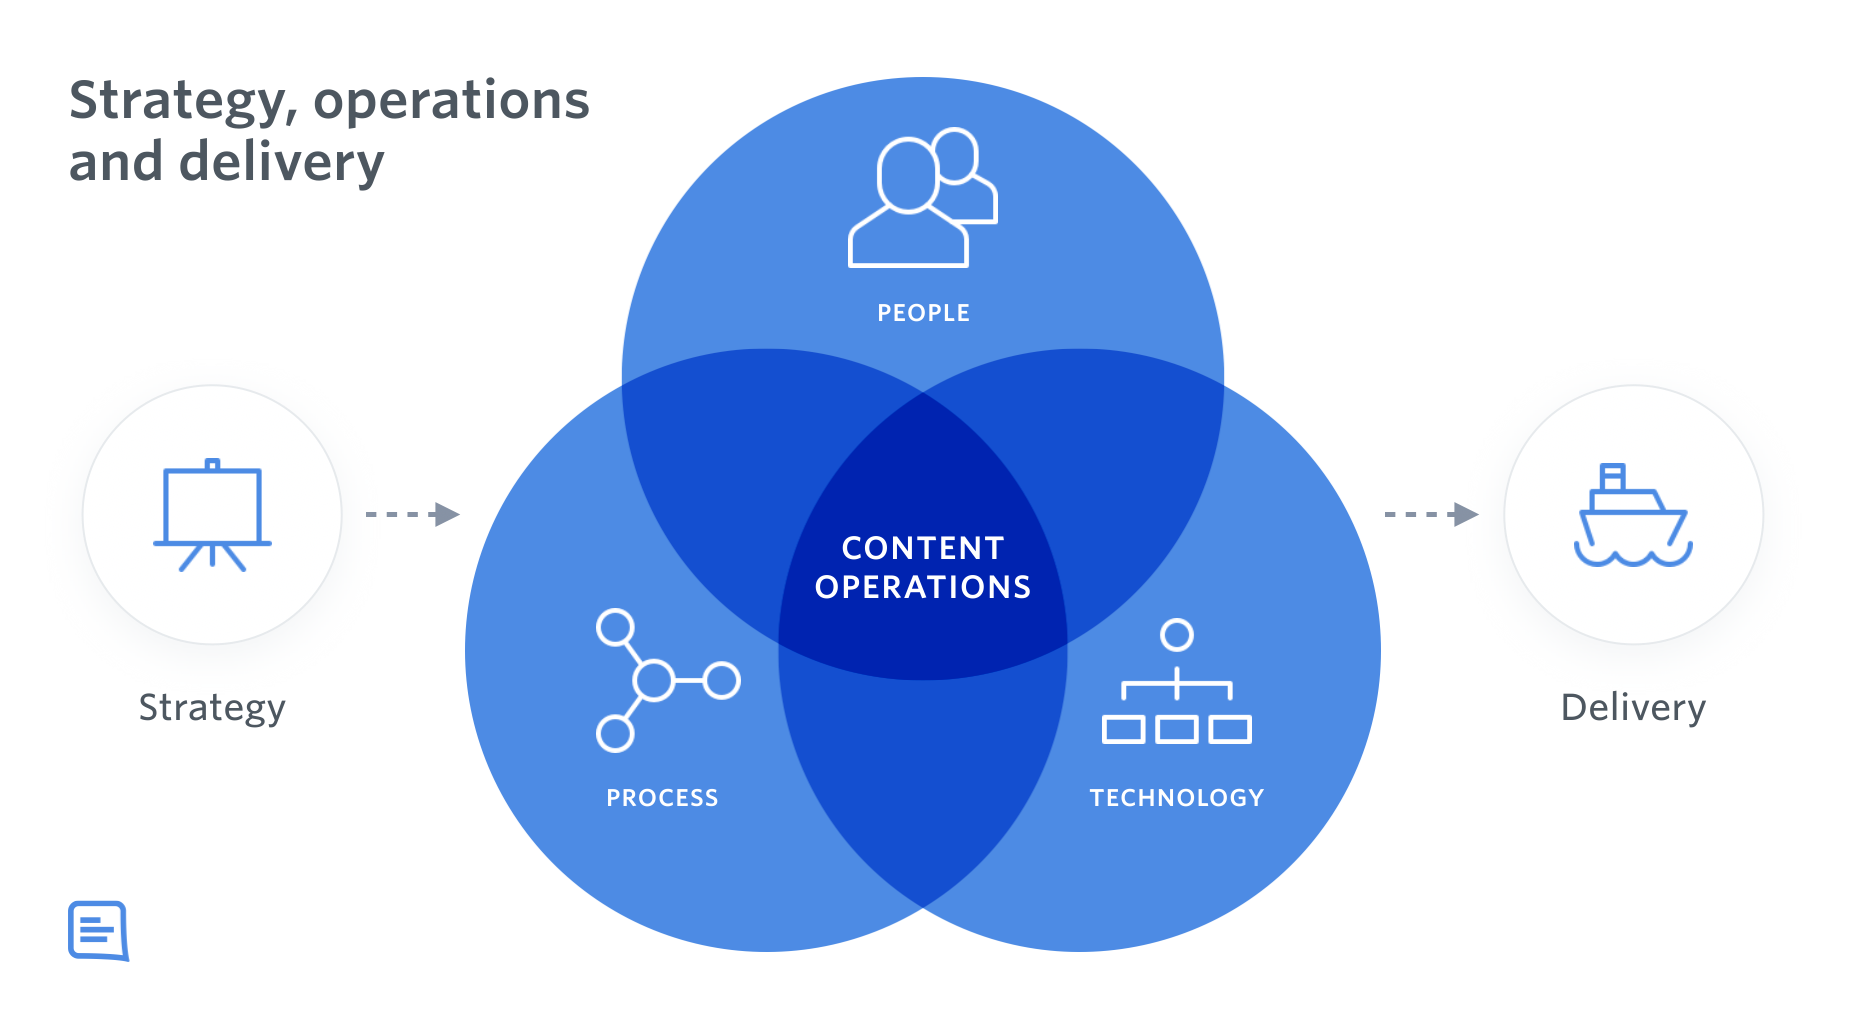 A venn diagram showing three pillars of content operations: people, process and techmology